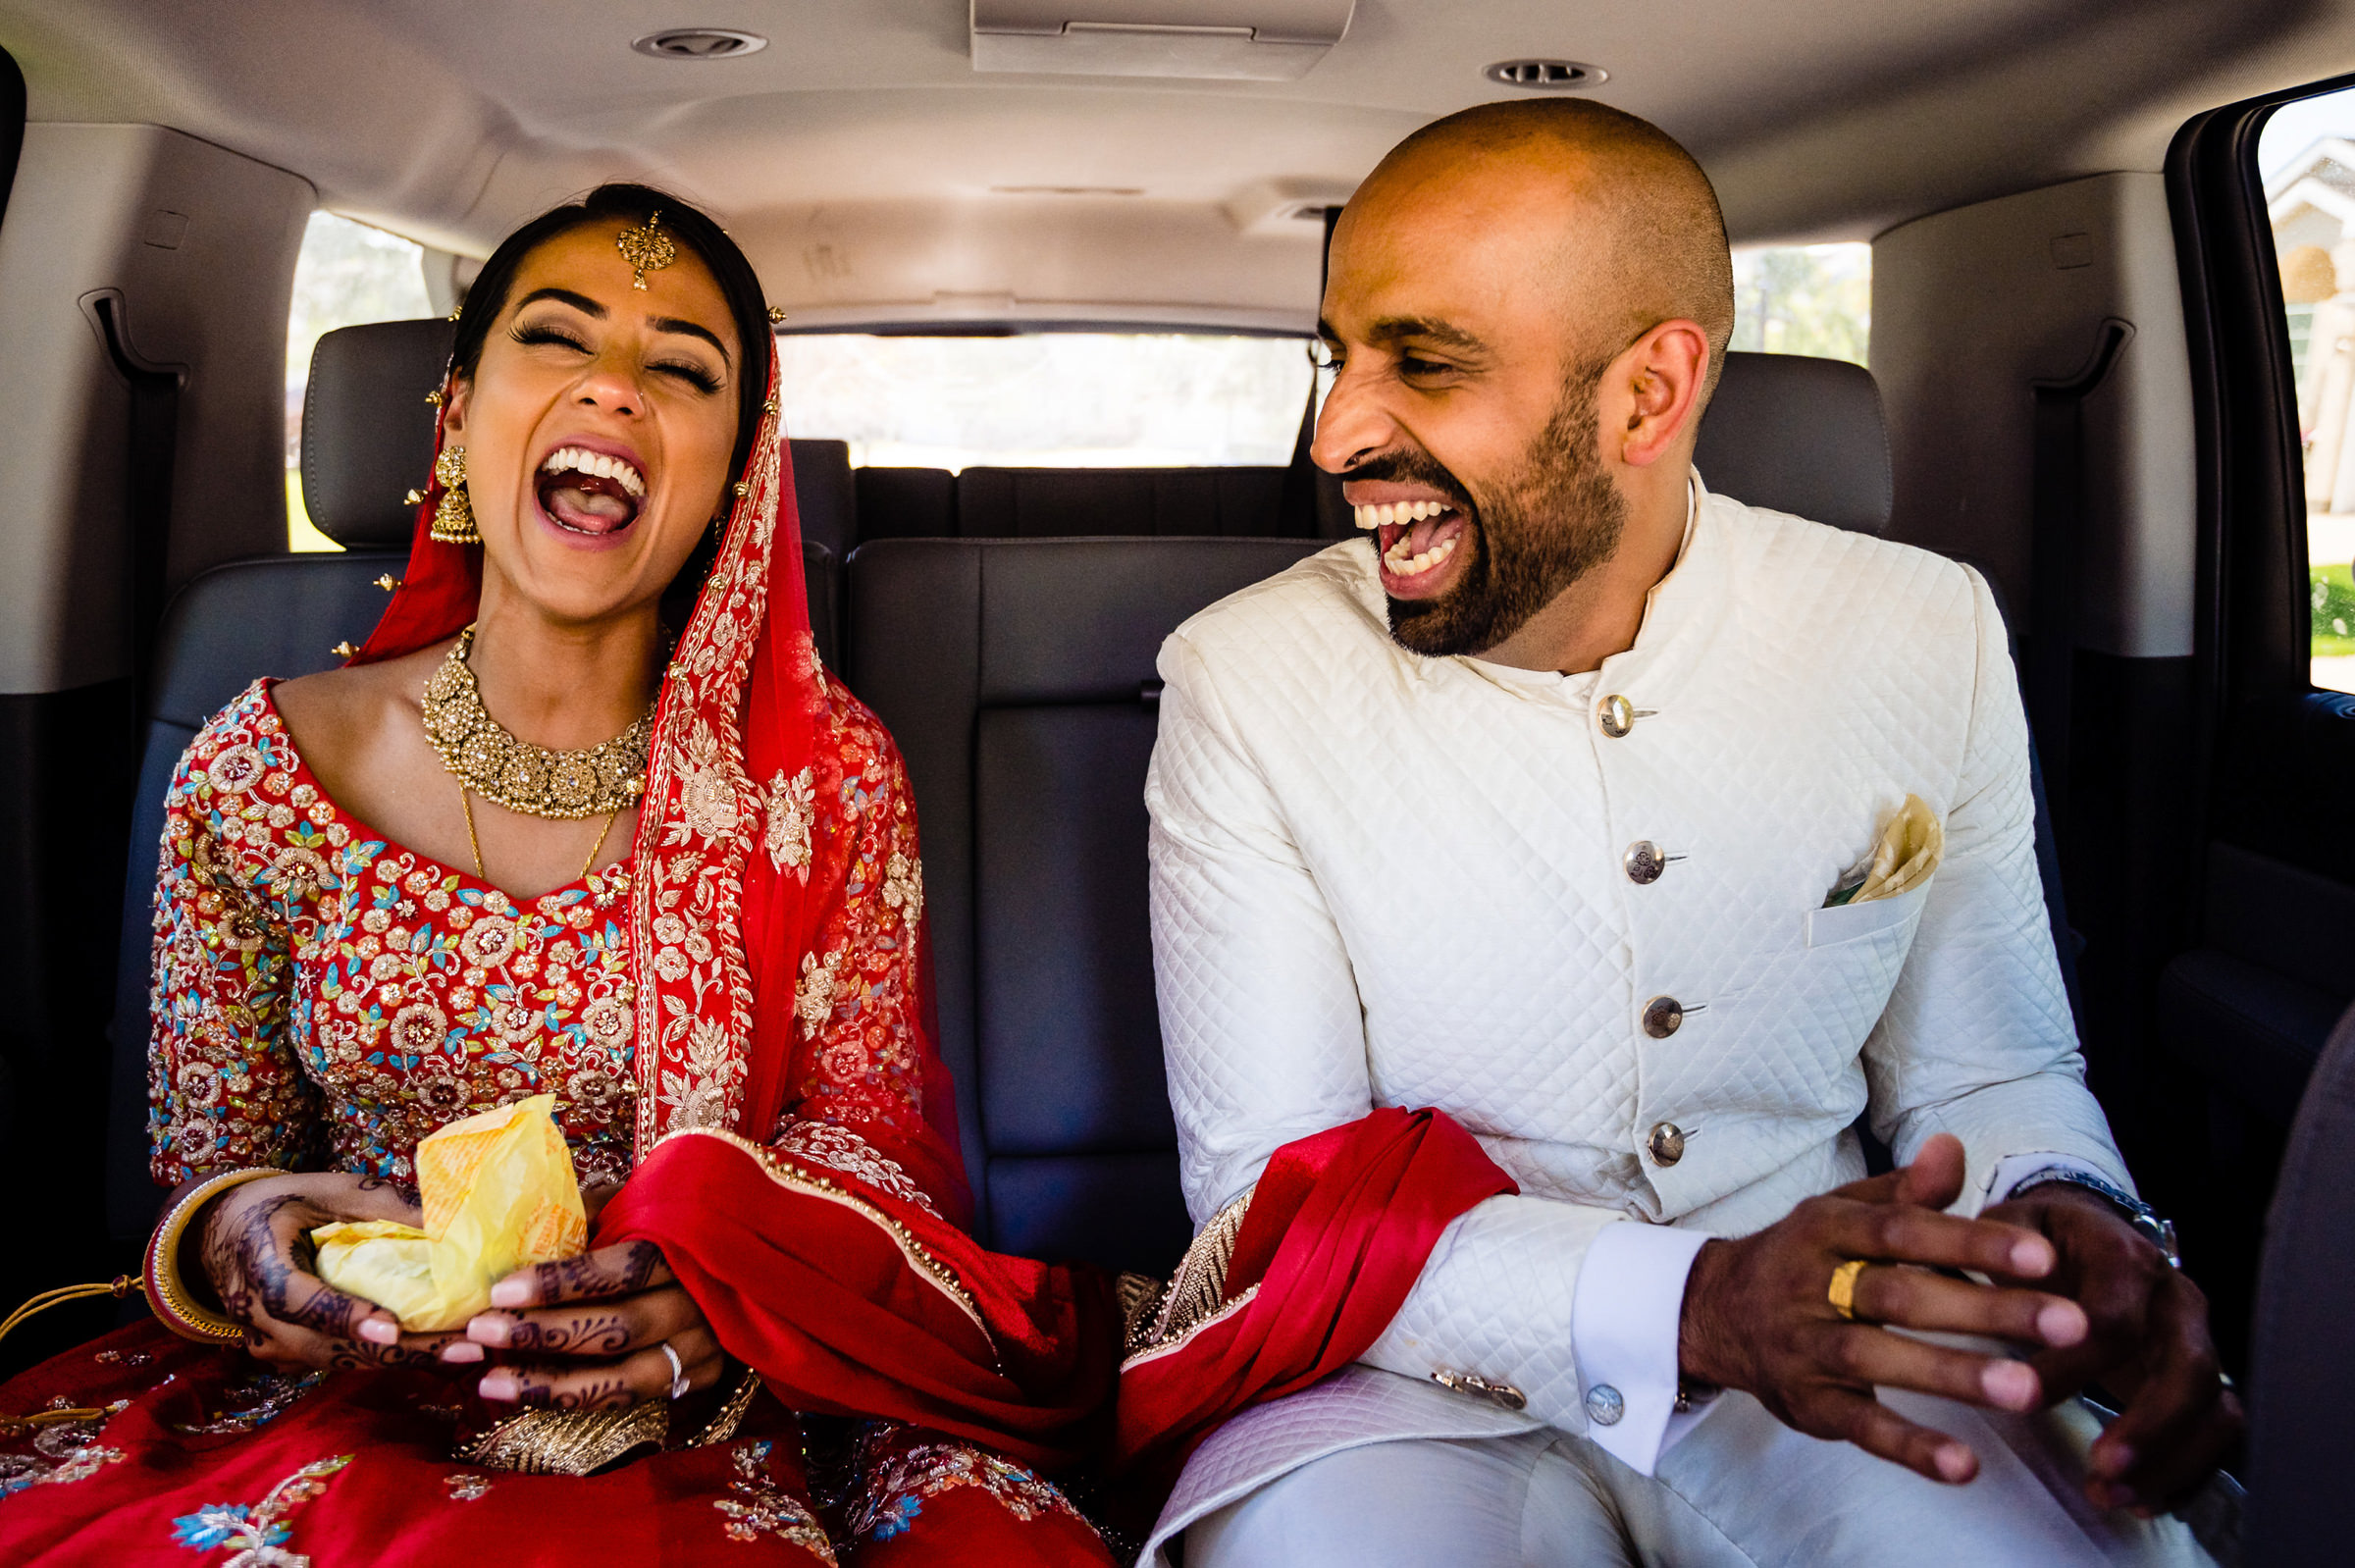 Hilarious photo of laughing bride and groom in limo - photo by Moore Photography